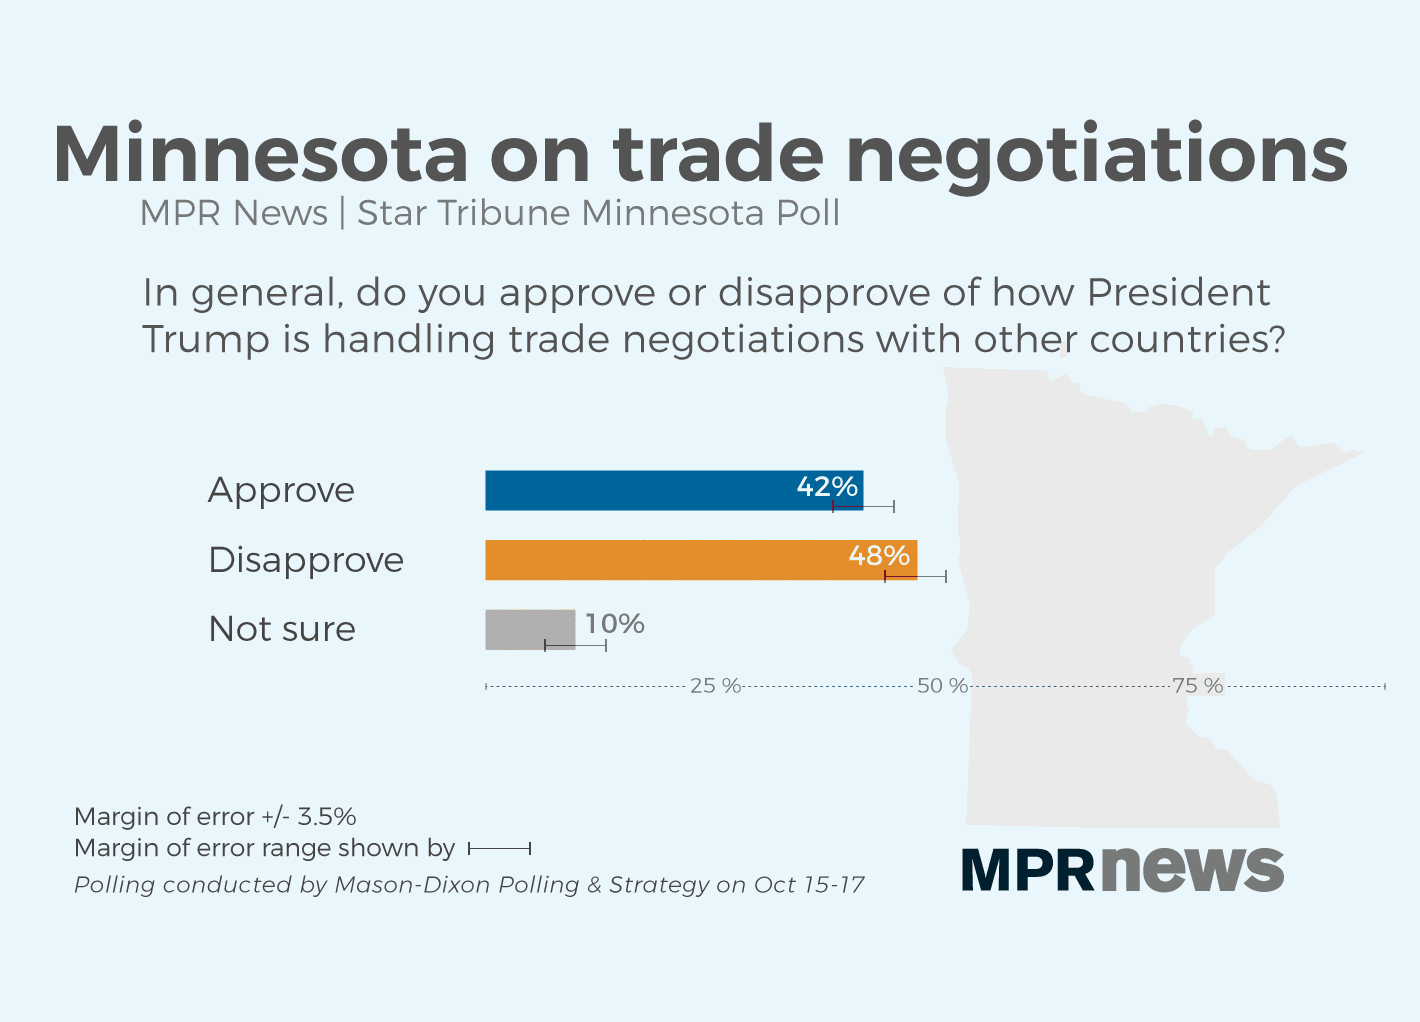 More disapprove of the handling of trade negotiations.